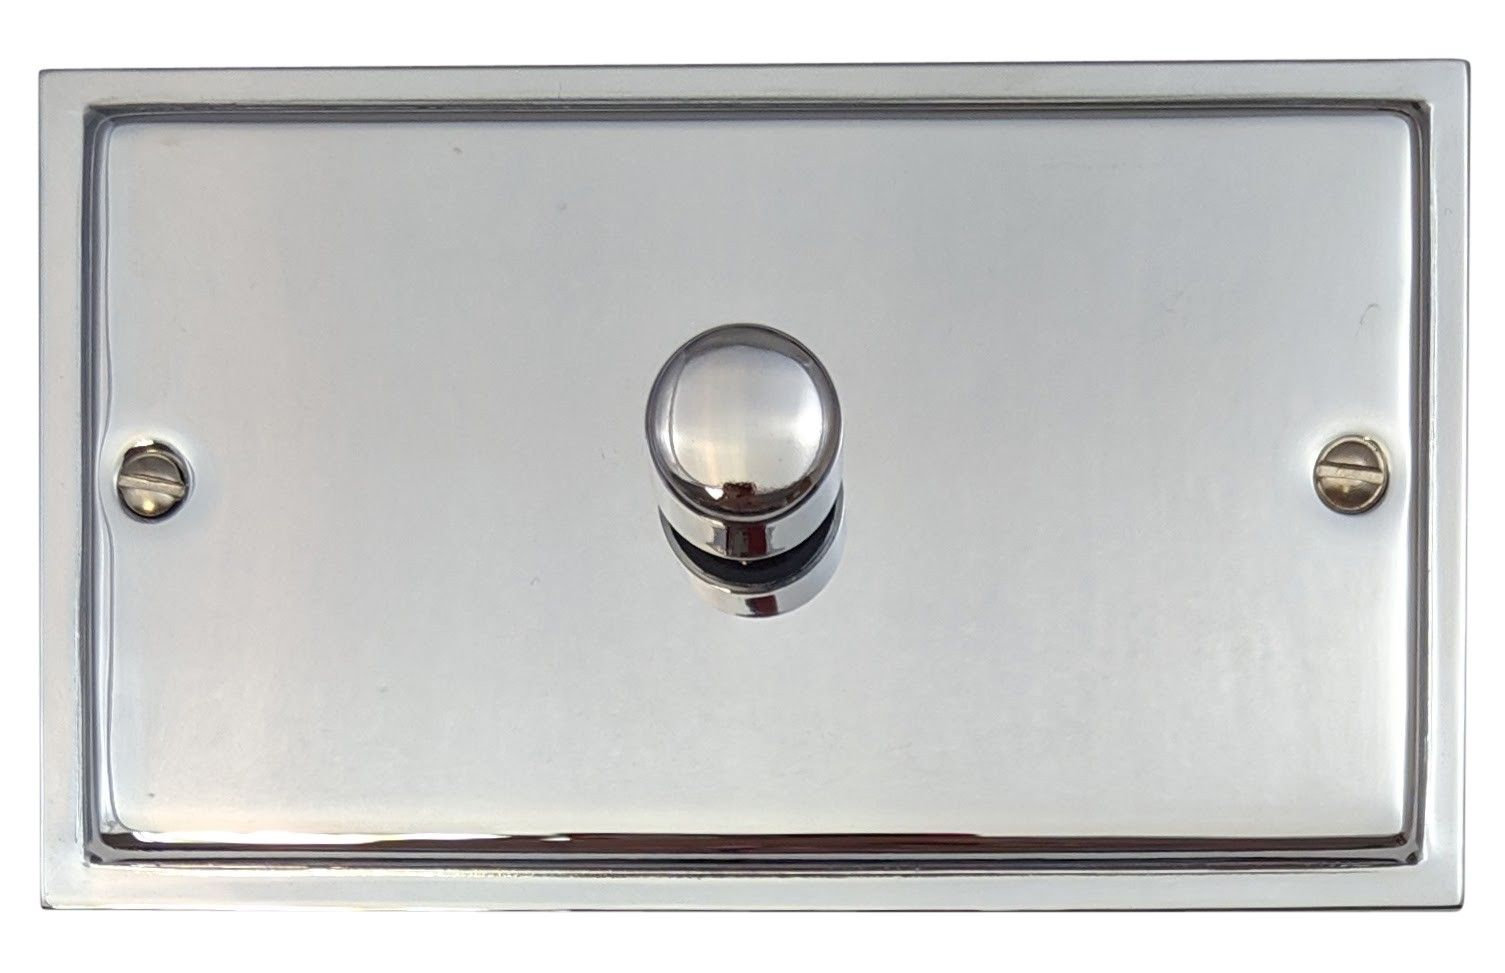 G&H HC16 Highline Plate Polished Chrome 1 Gang 1 or 2 Way 700W Dimmer Switch Double Plate